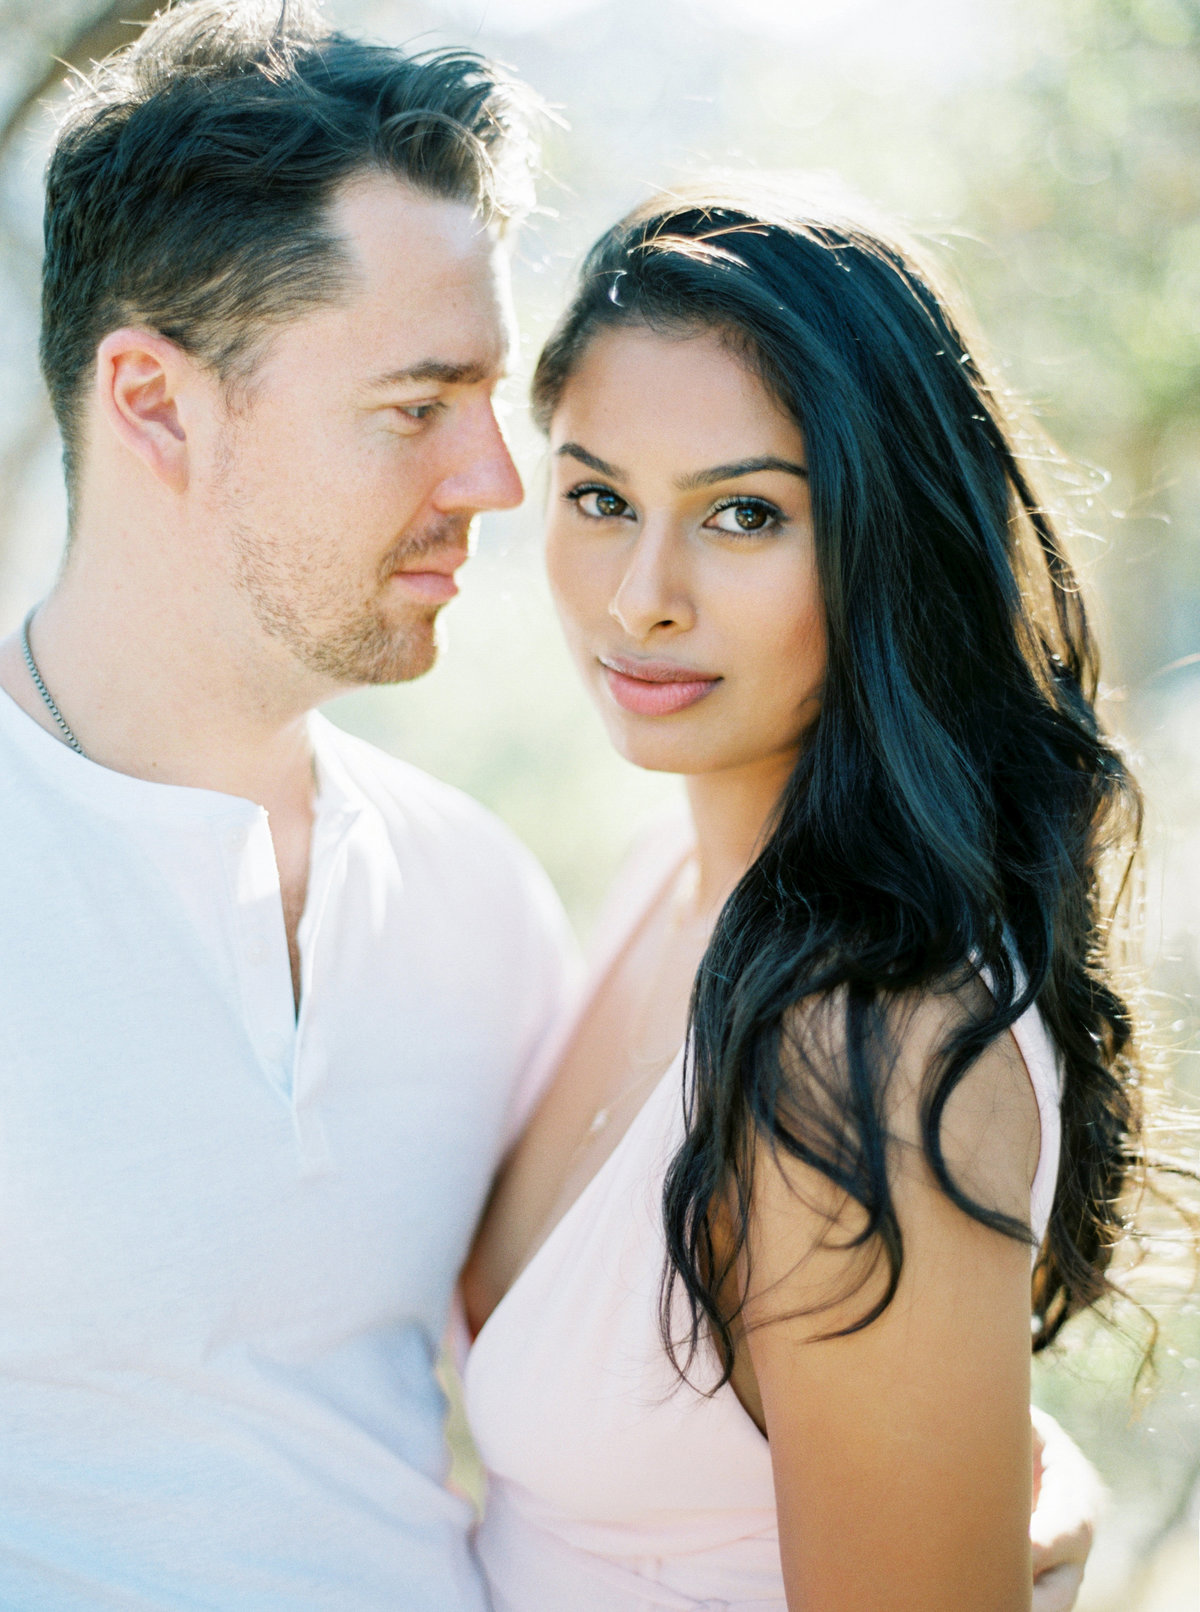 CORNELIA ZAISS PHOTOGRAPHY | RIMA + ALEX PORTRAIT SESSION 022